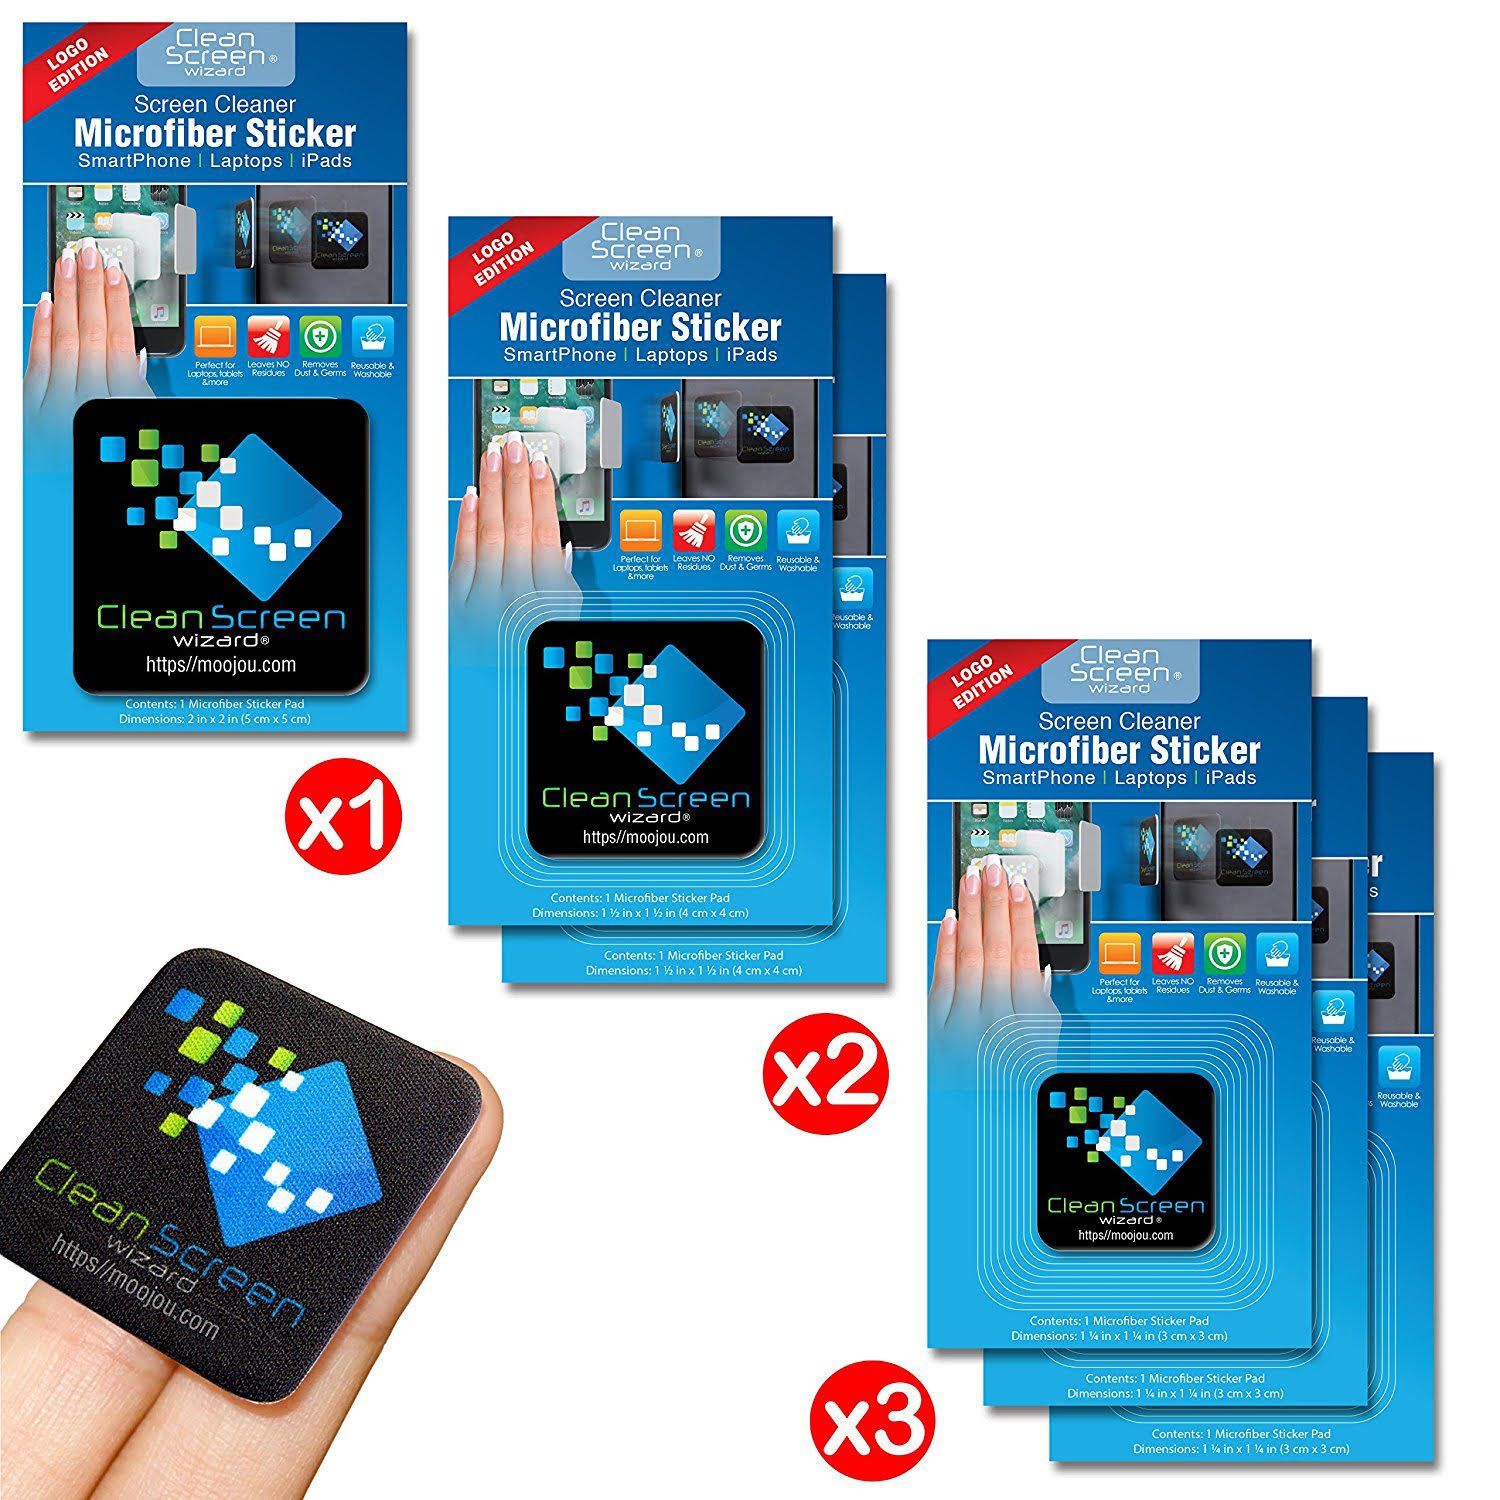 6-Pack Screen Cleaner Microfiber Stickers - Best Cleaning Pad for Portable Gadgets - Small, Medium & Large Sizes (6 units in total) - By Clean Screen Wizard MooJou Enterprises 6Pals